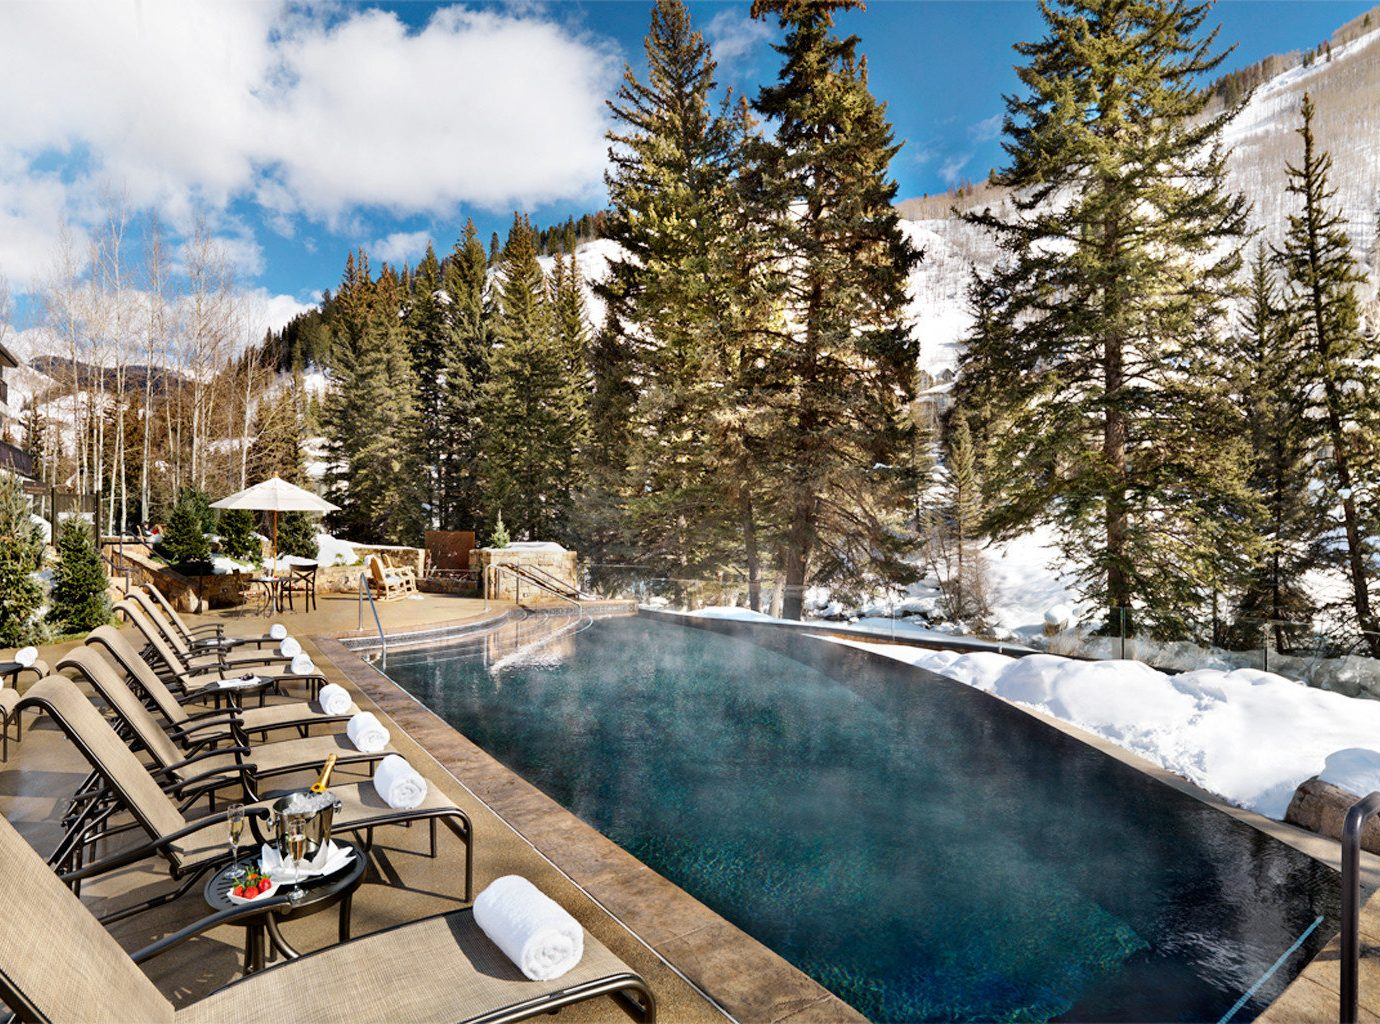 Boutique Hotels Hotels Mountains Nature Outdoor Activities Outdoors Outdoors + Adventure Patio Pool Resort Trip Ideas outdoor sky tree snow Winter season vacation estate swimming pool home backyard